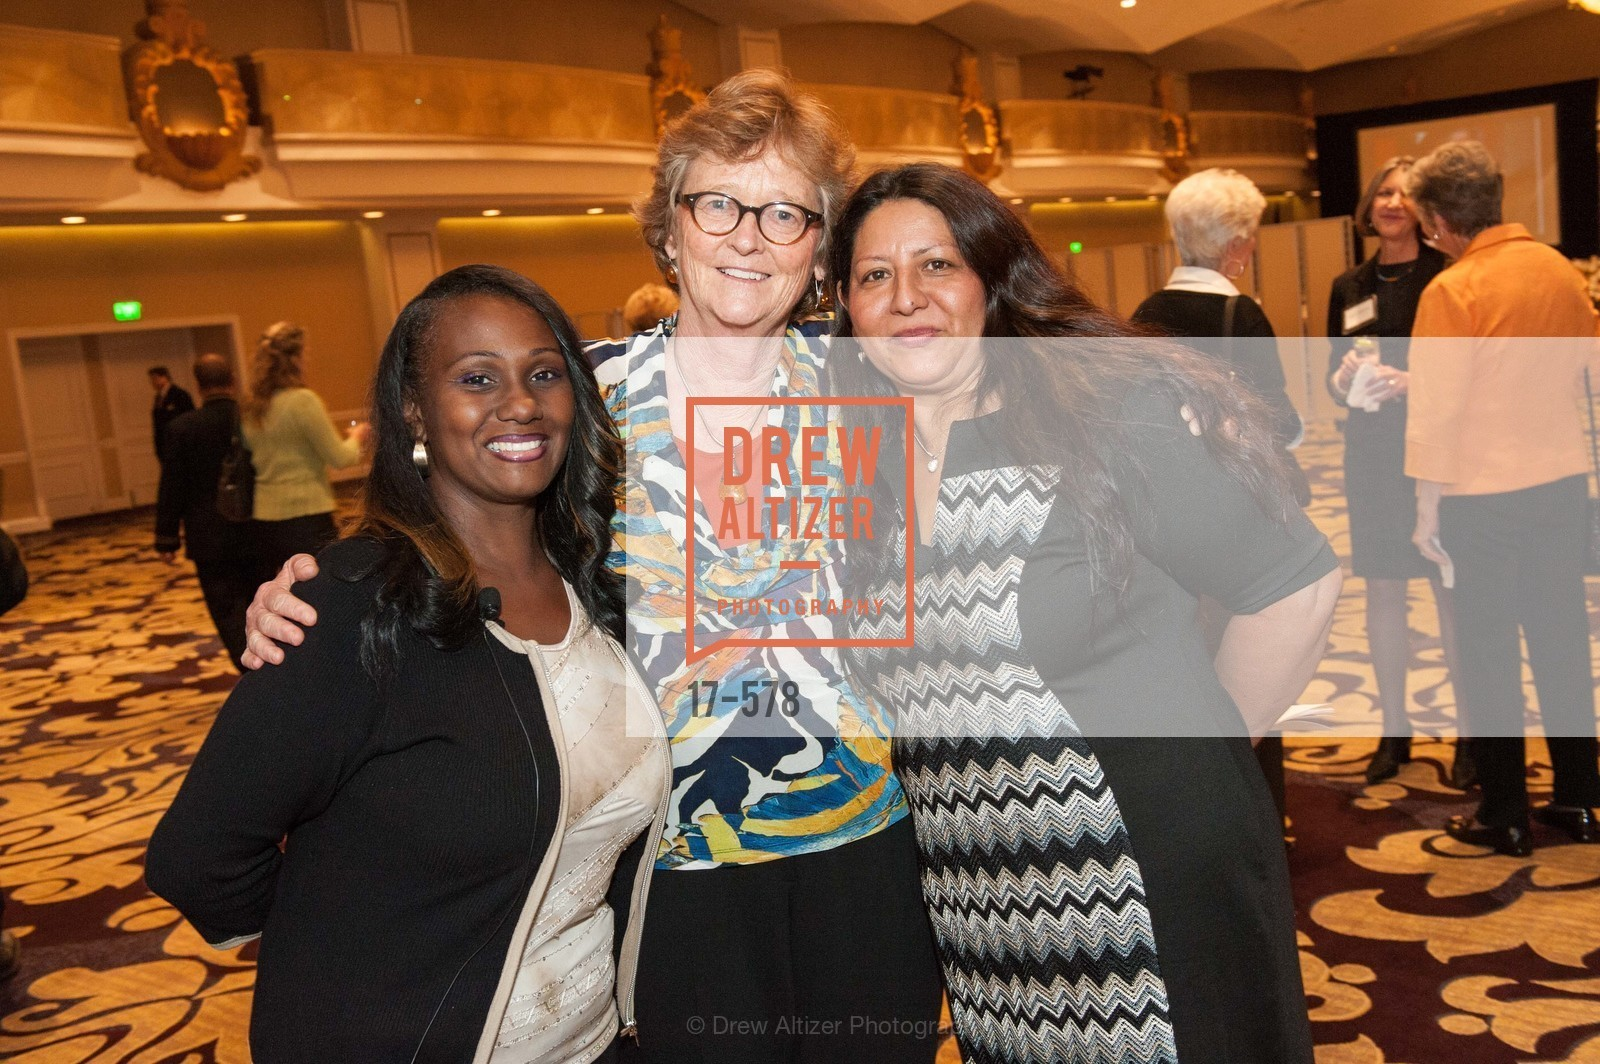 Carla Roberts, Martha Ryan, Sonya Batres, HOMELESS PRENATAL Annual Luncheon 2014, US, October 1st, 2014,Drew Altizer, Drew Altizer Photography, full-service agency, private events, San Francisco photographer, photographer california